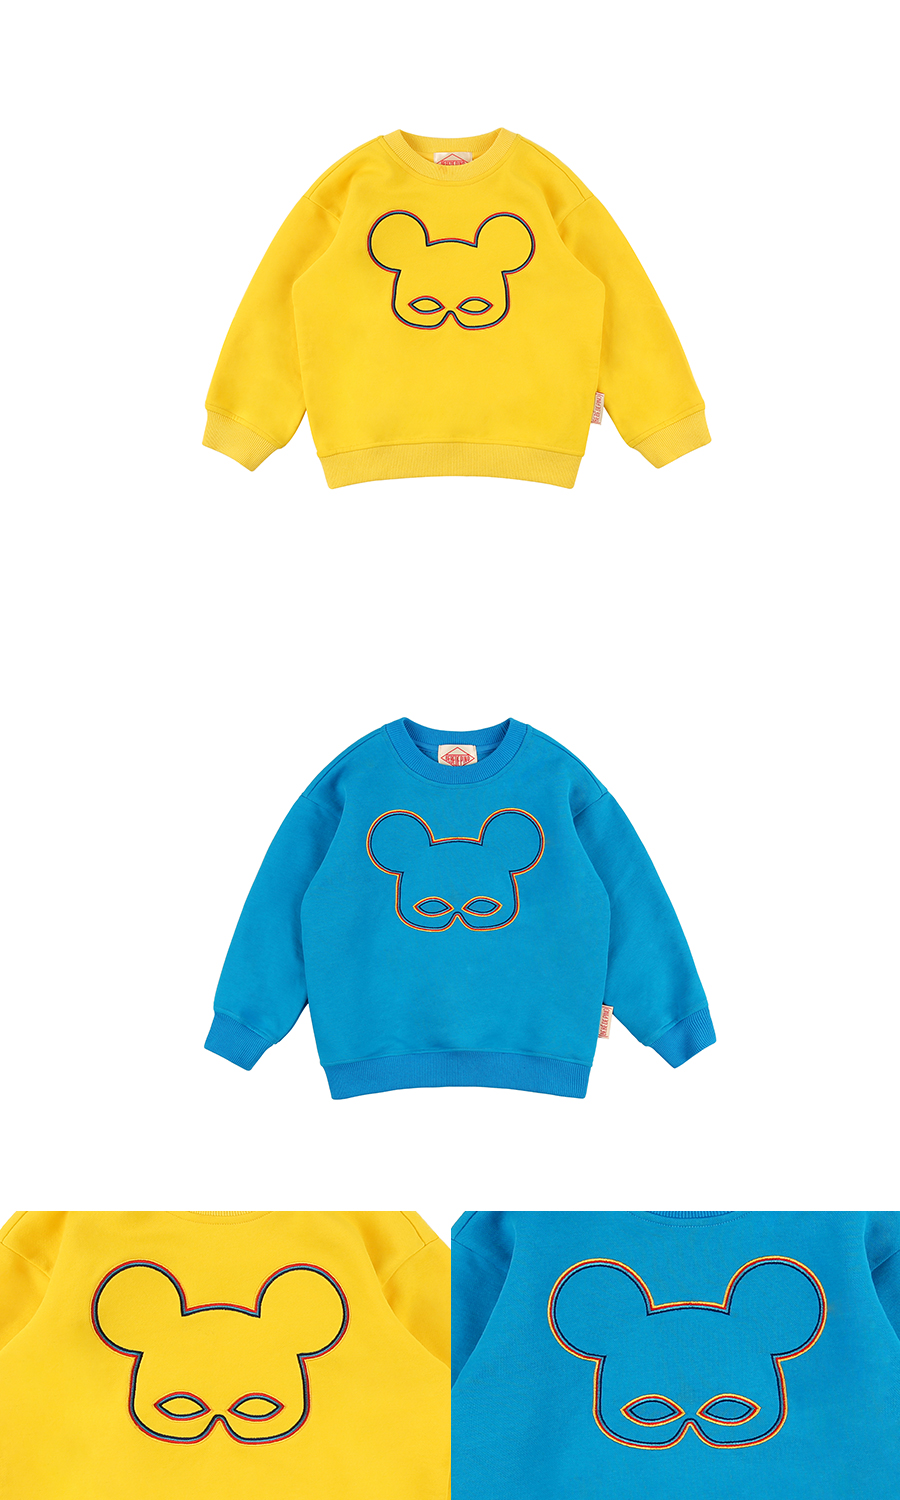 Basic edge rainbow pino sweatshirt 상세 이미지